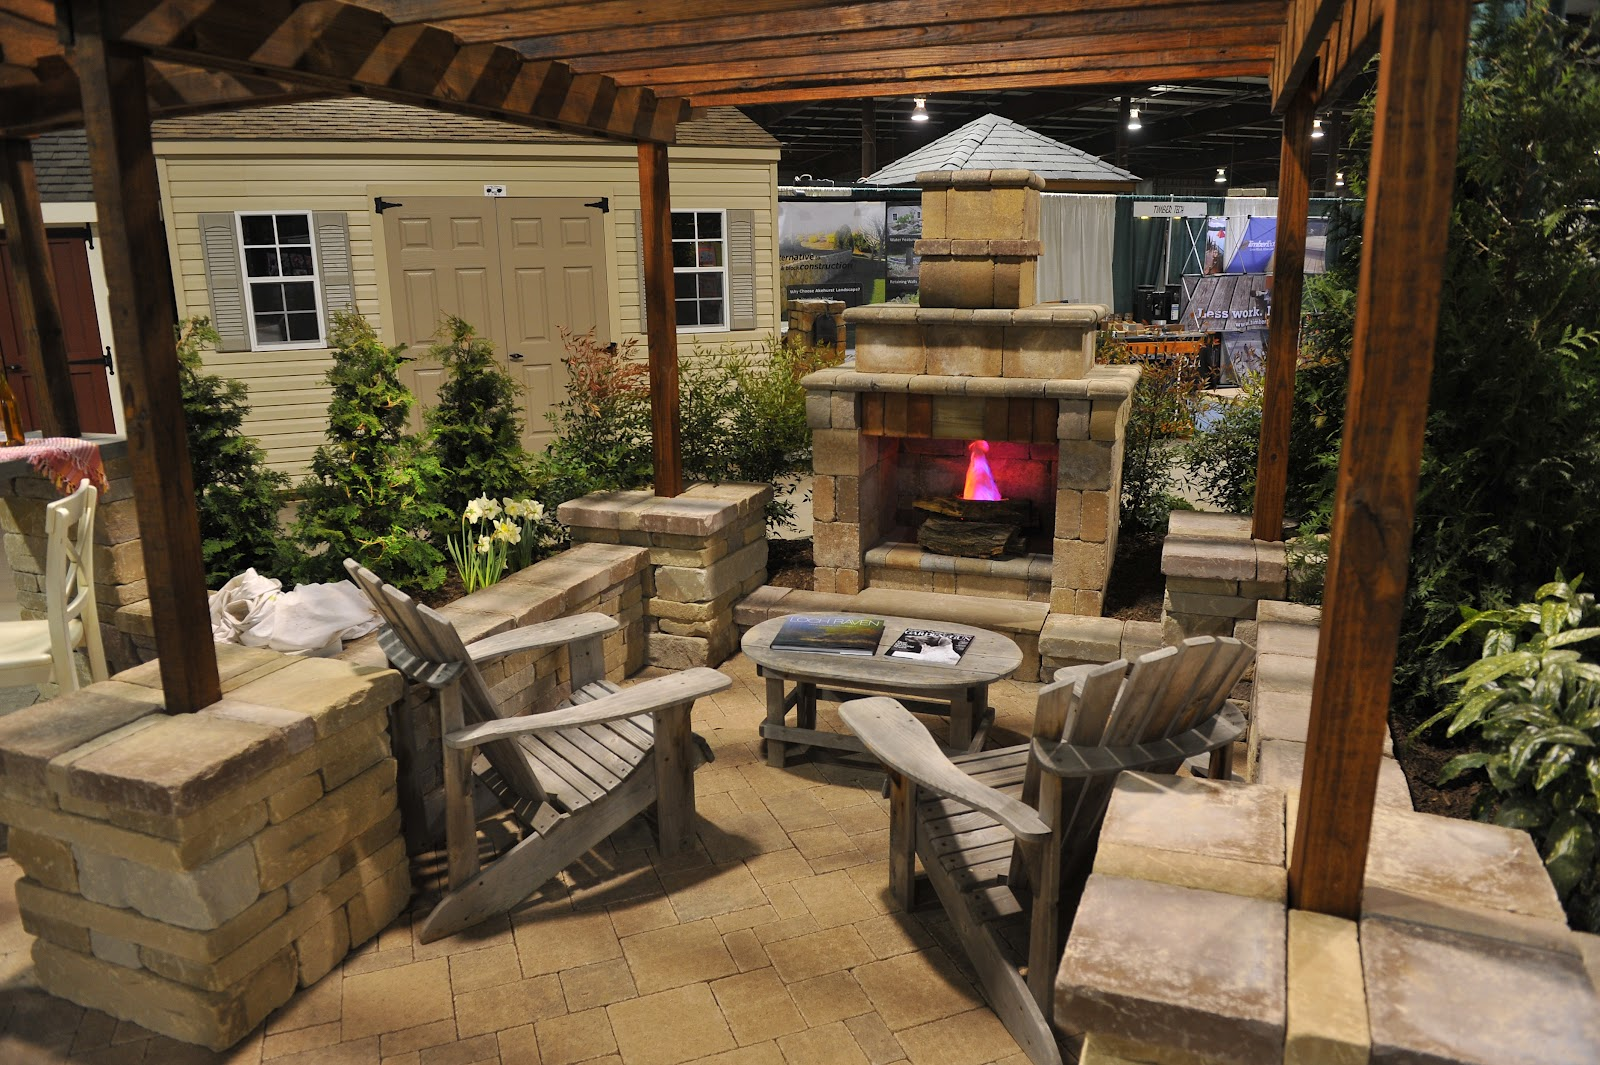 Backyard entertainment ideas photo 3 design your home Backyard ideas